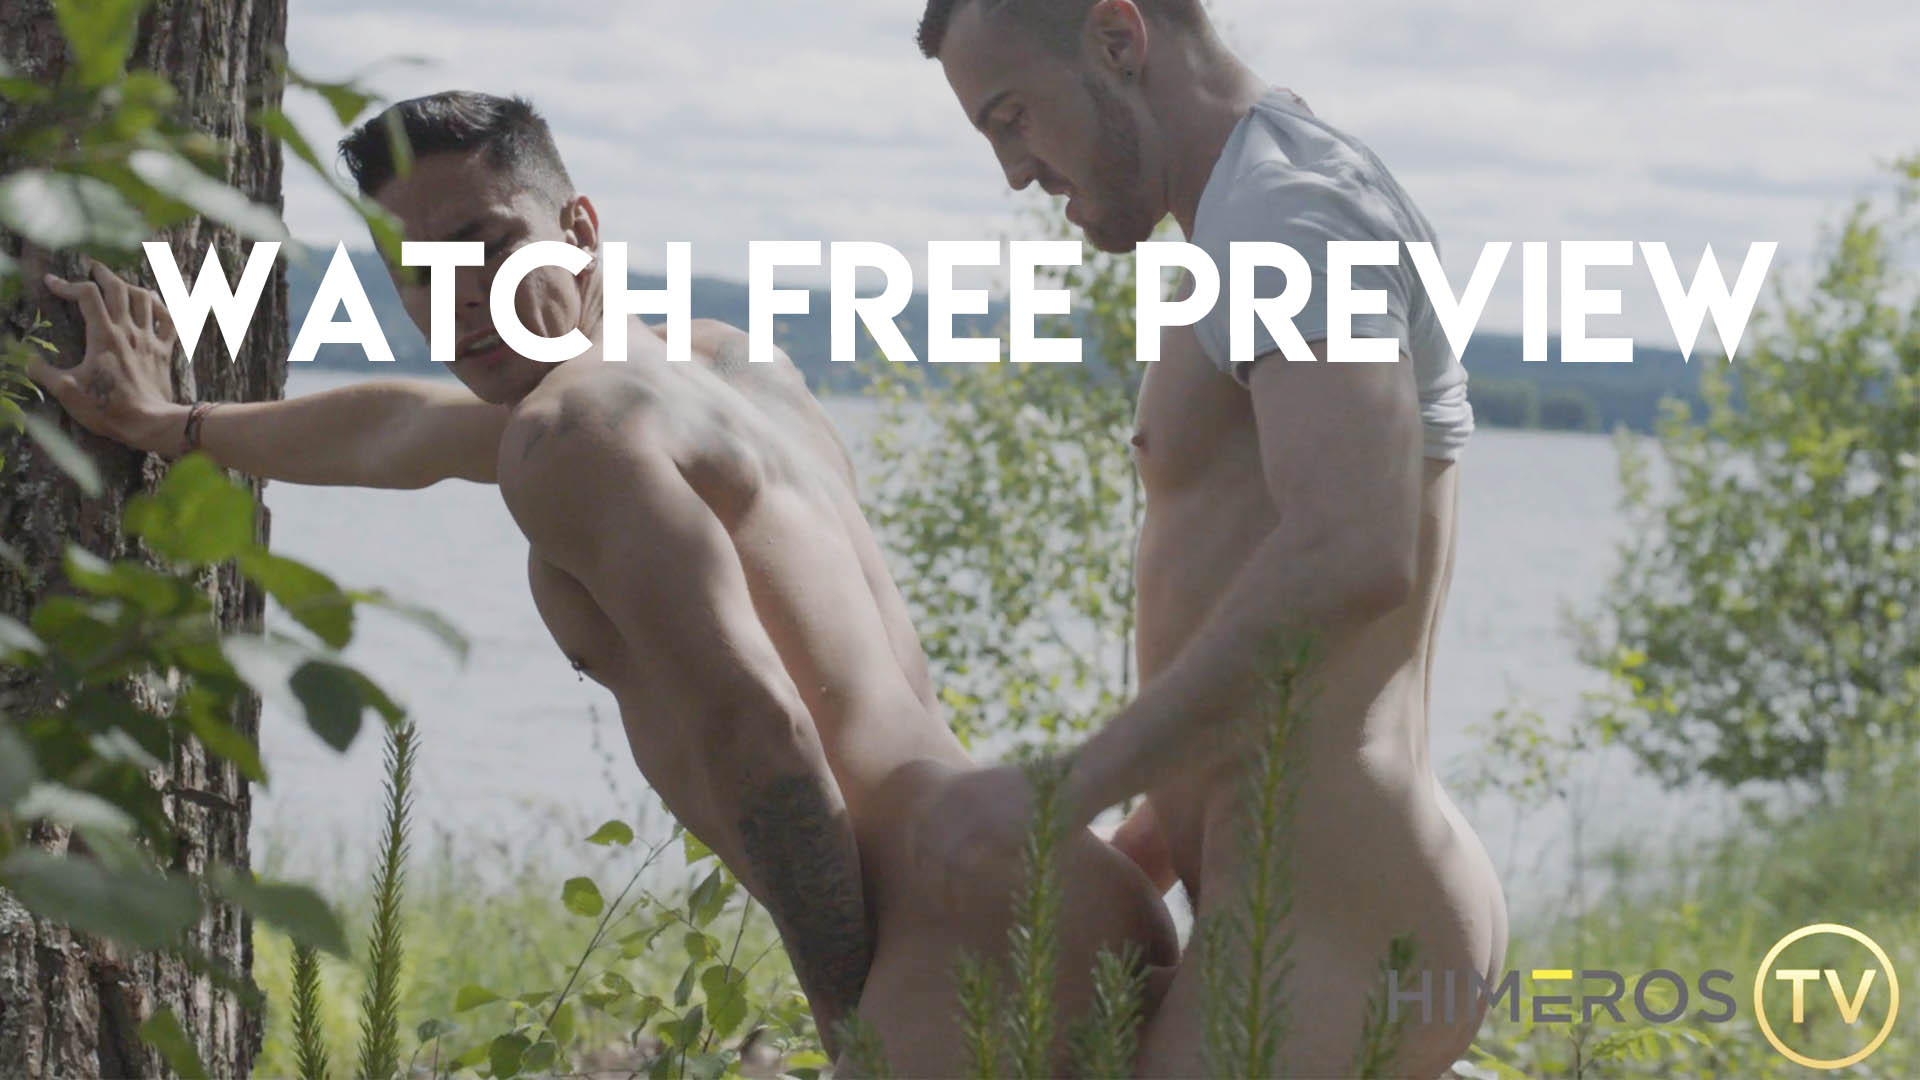 Amazing Erotic Video himeros.tv preview - the best gay sex of your life